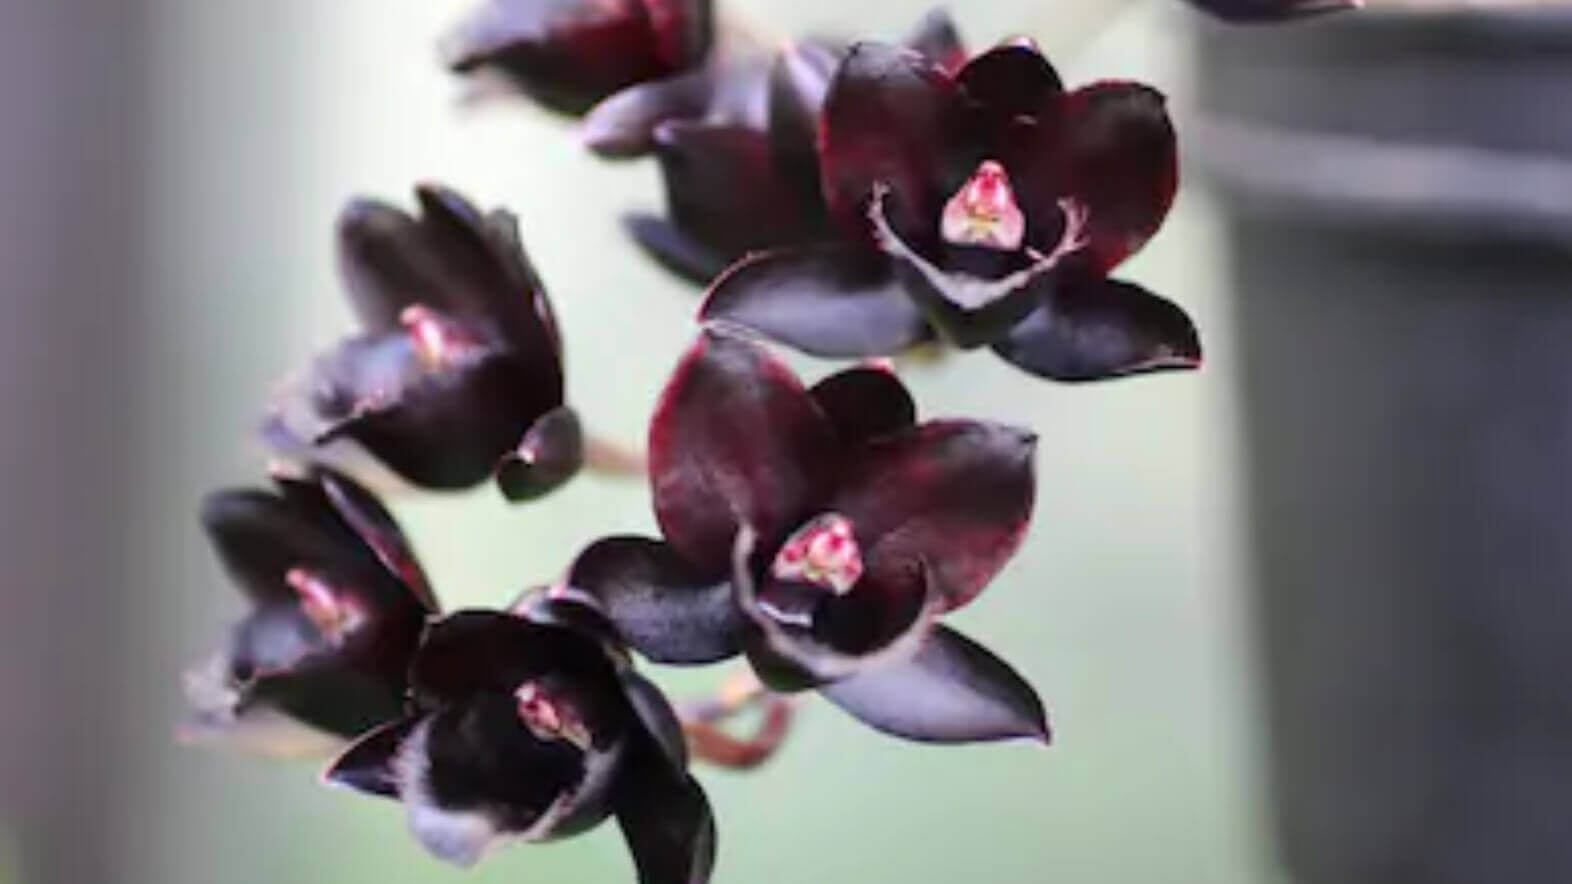 image showing black orchids